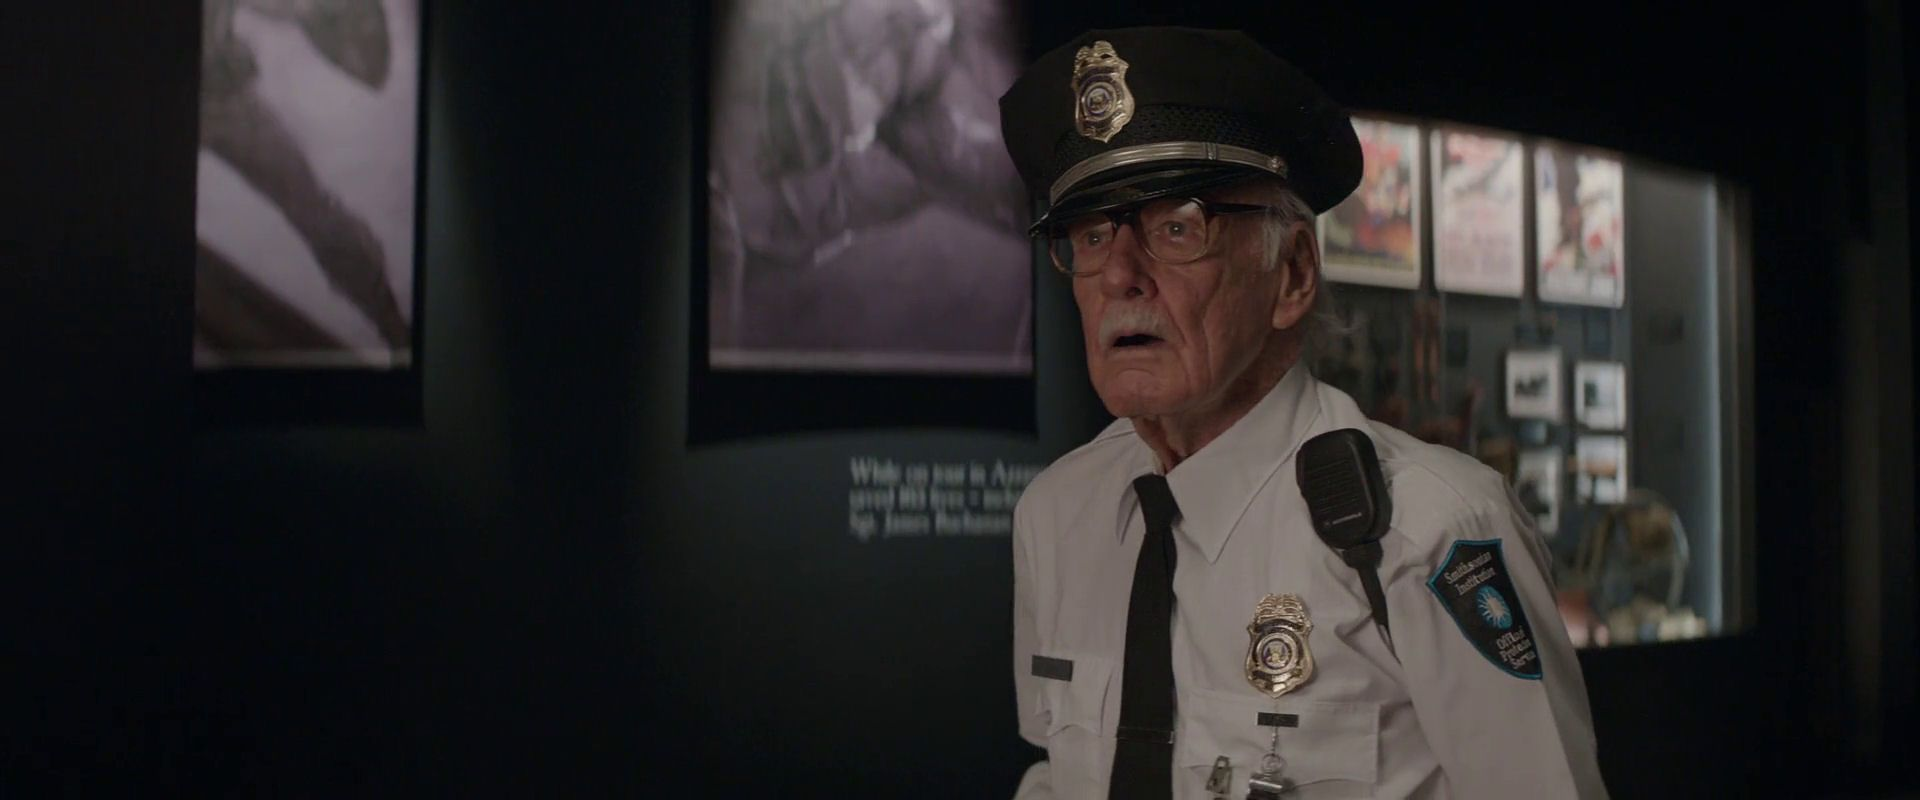 "Stan Lee's cameo in ""Captain America The Winter Soldier"". #Marvel #CaptainAmericaTheWinterSoldier 